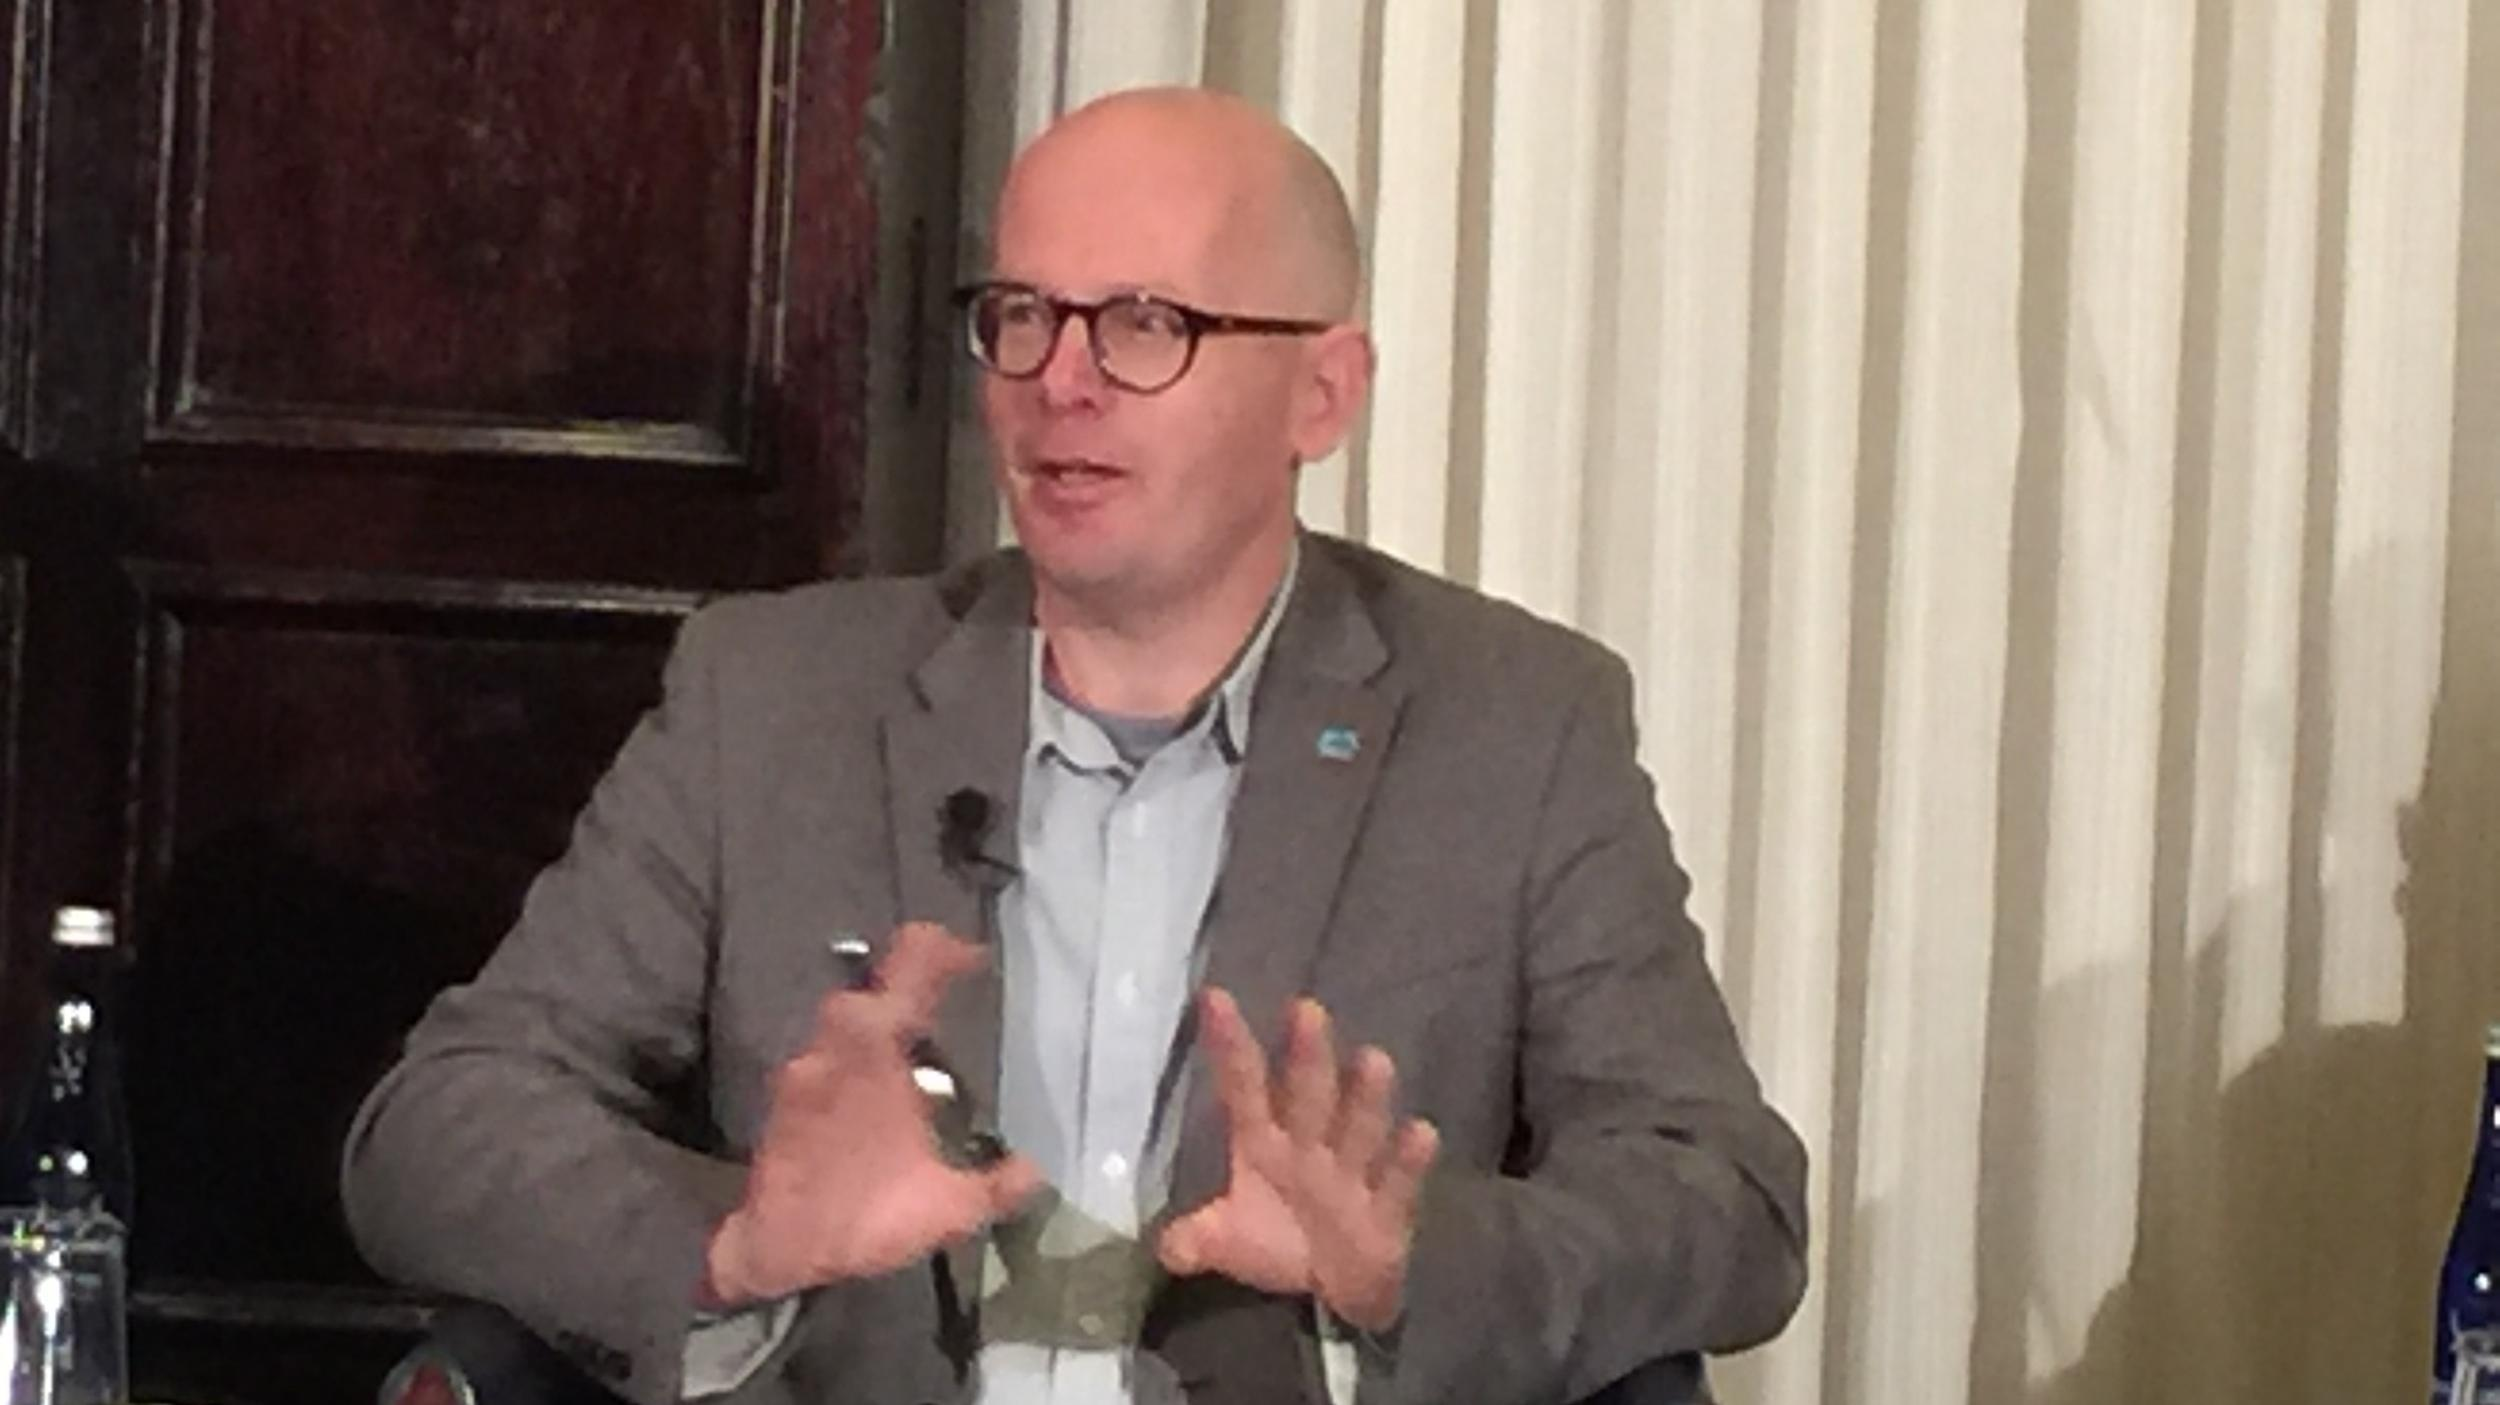 Martyn Williams discusses his report released by HRNK at the National Press Club in Washington, December 18, 2019.